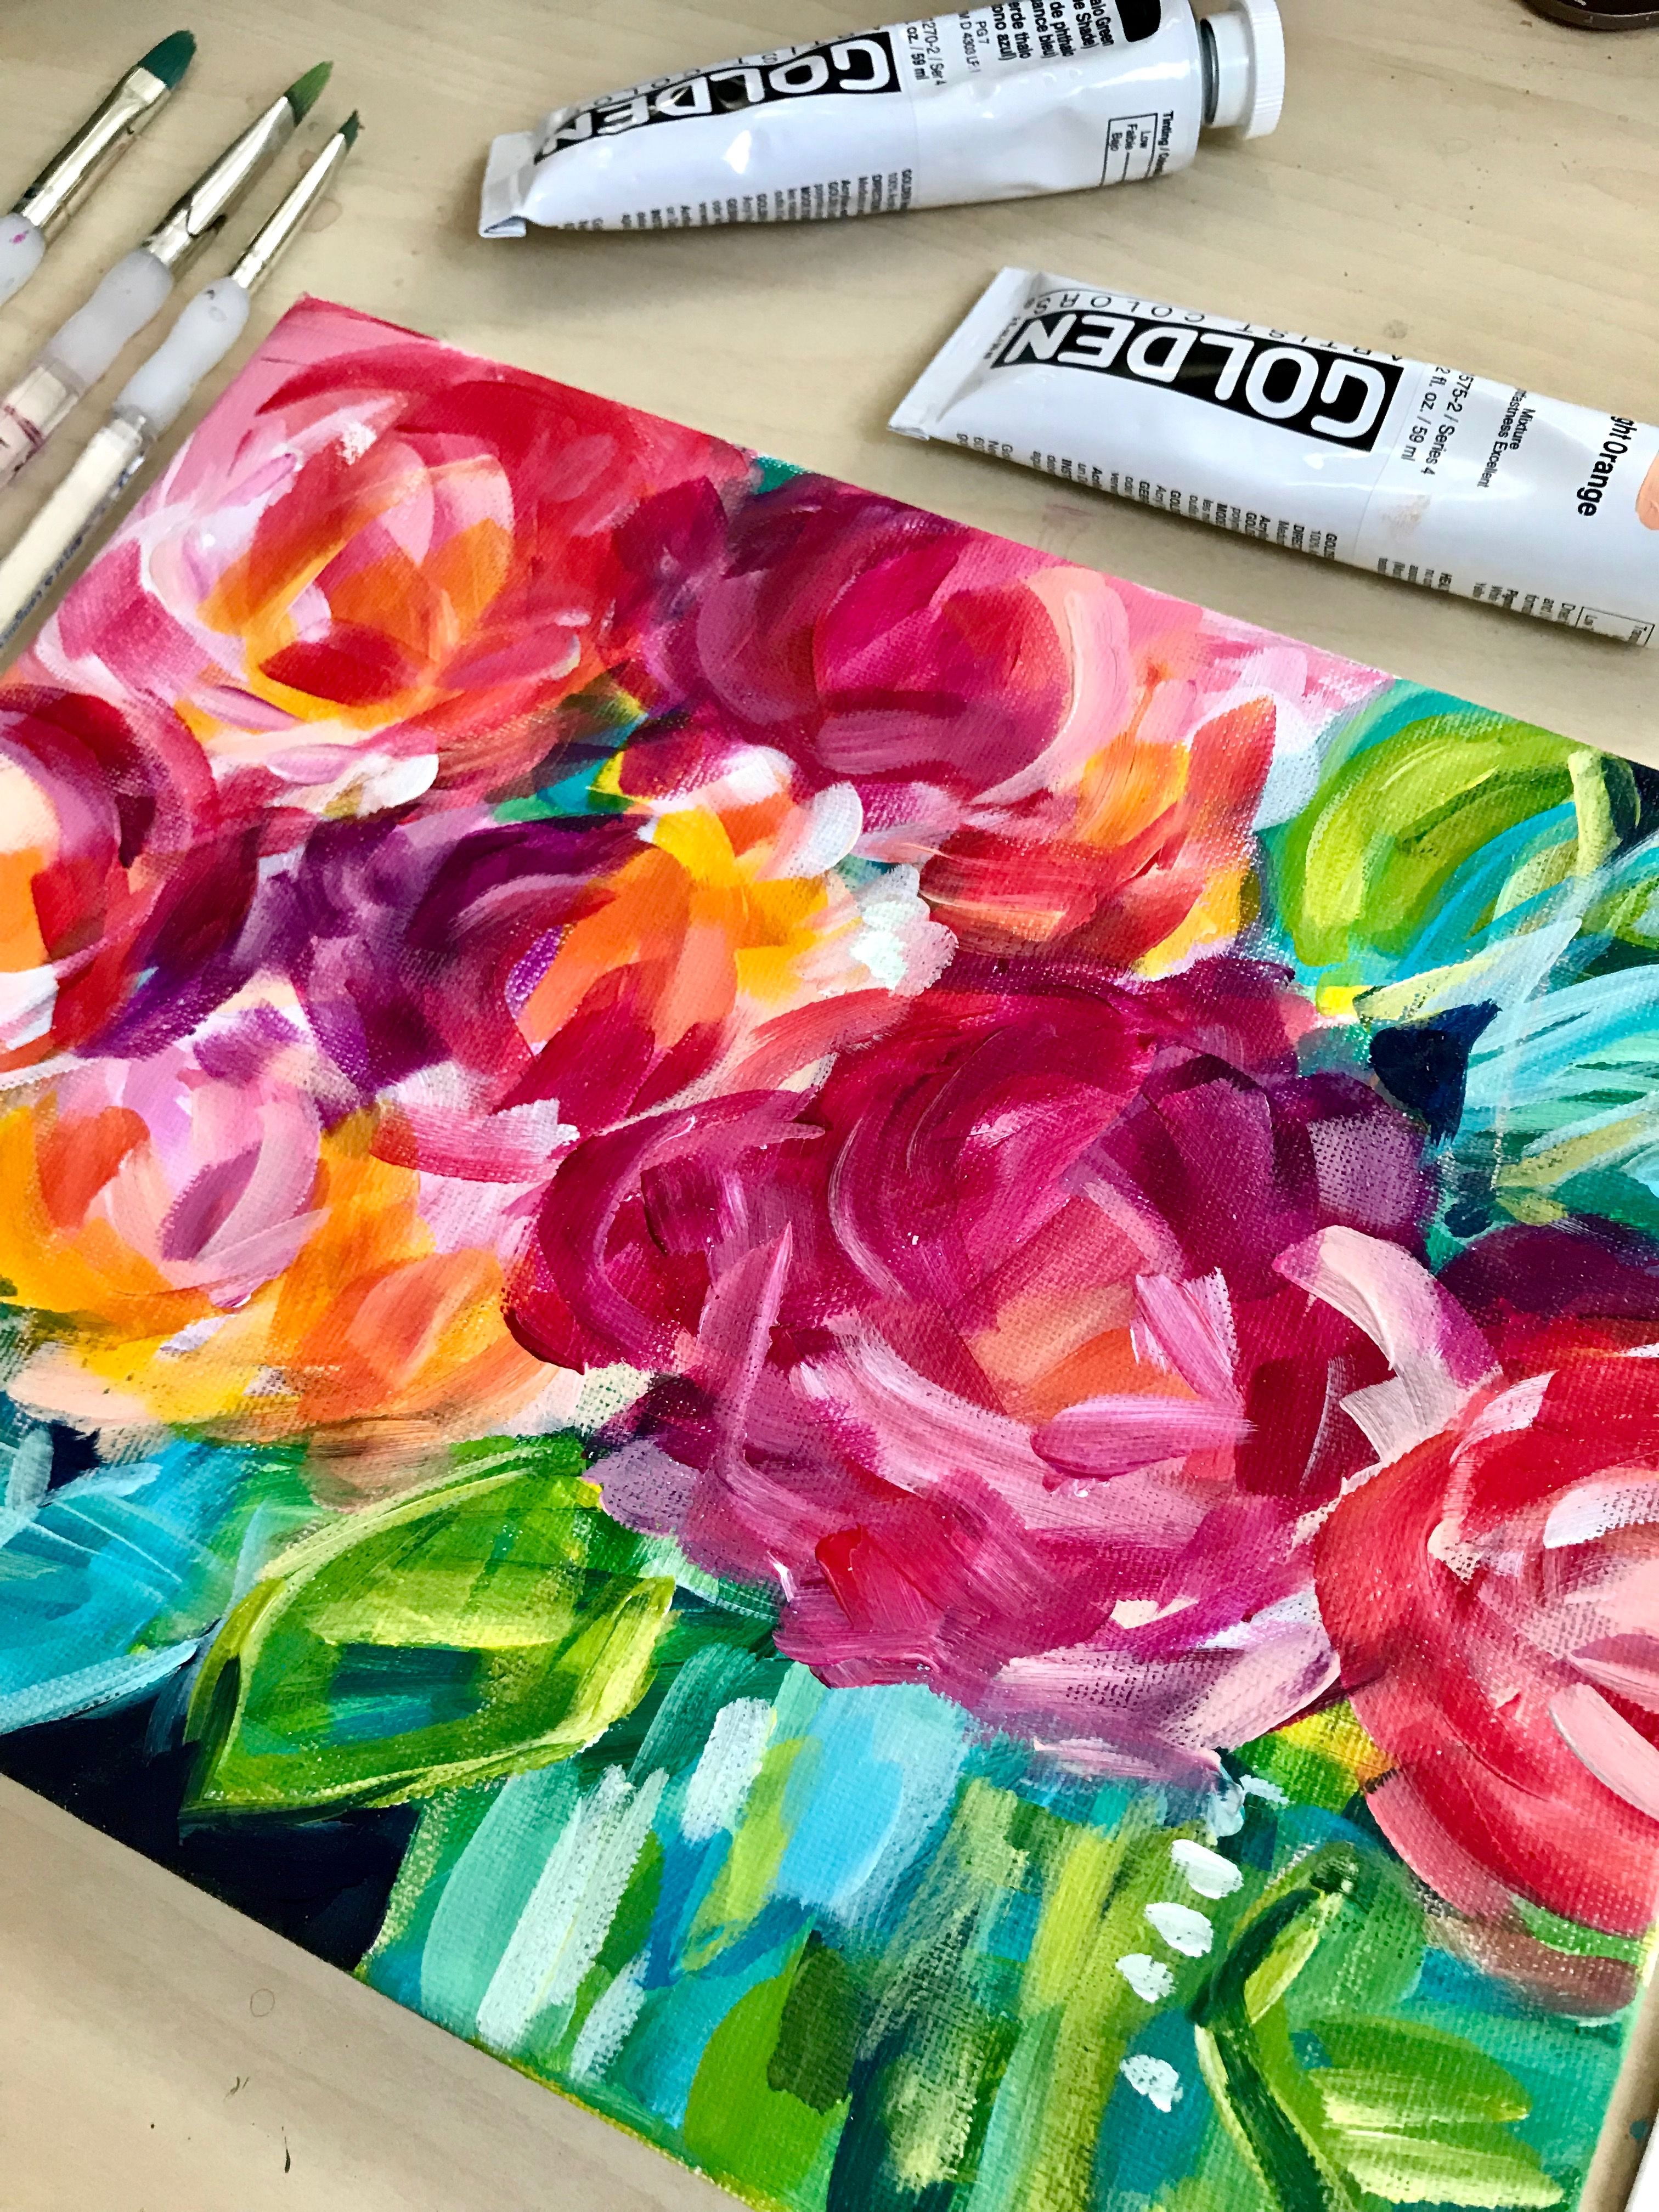 How To Paint Abstract Florals With Acrylic Paint On Canvas Painting For Beginners Ste Abstract Flowers Acrylic Painting Flowers Acrylic Painting For Beginners